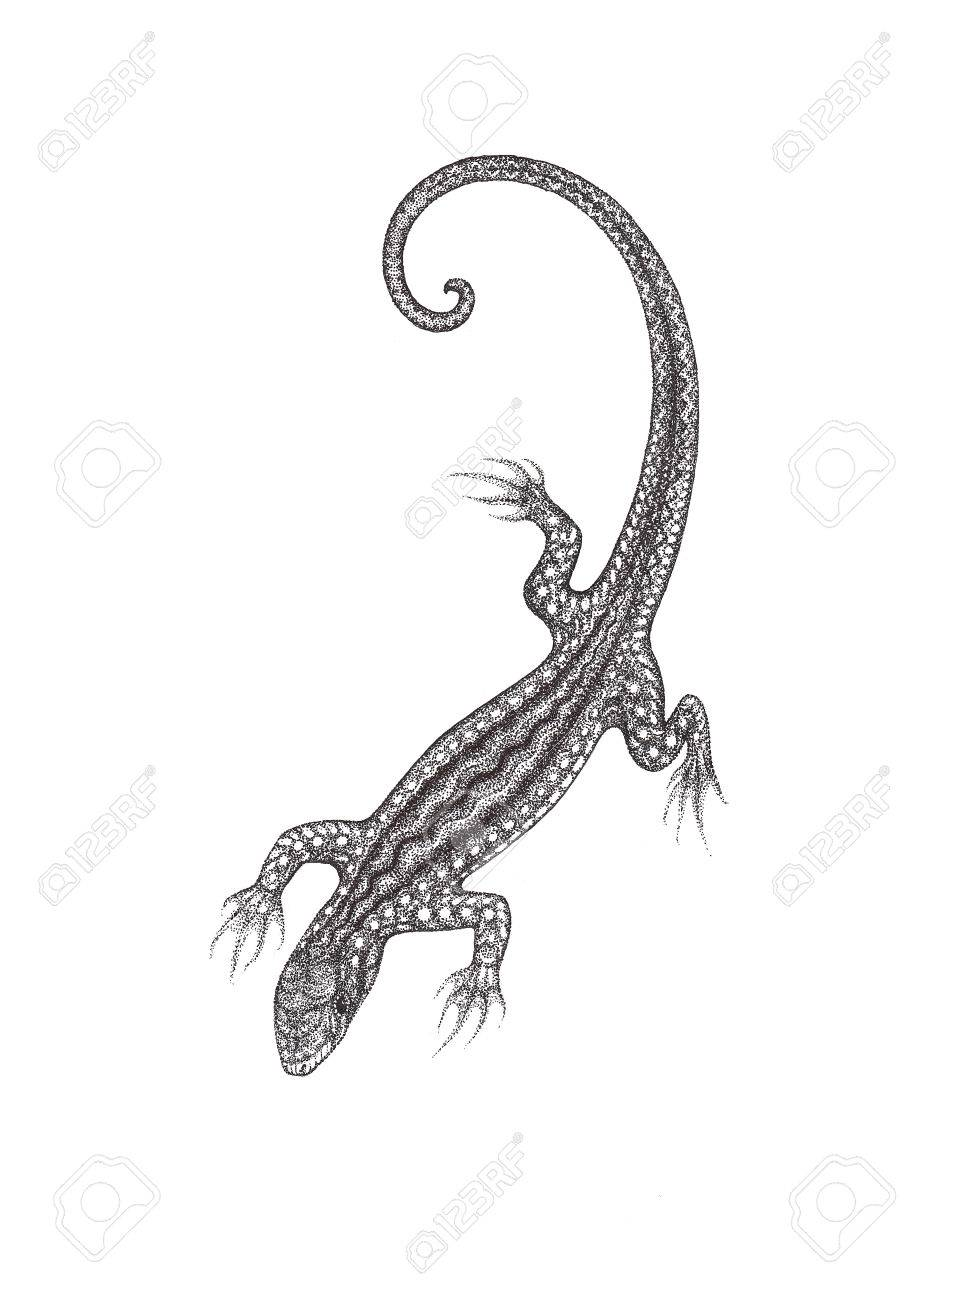 The Drawn Lizard On A White Background In The Style Of Pointillism ... for House Lizard Drawing  67qdu